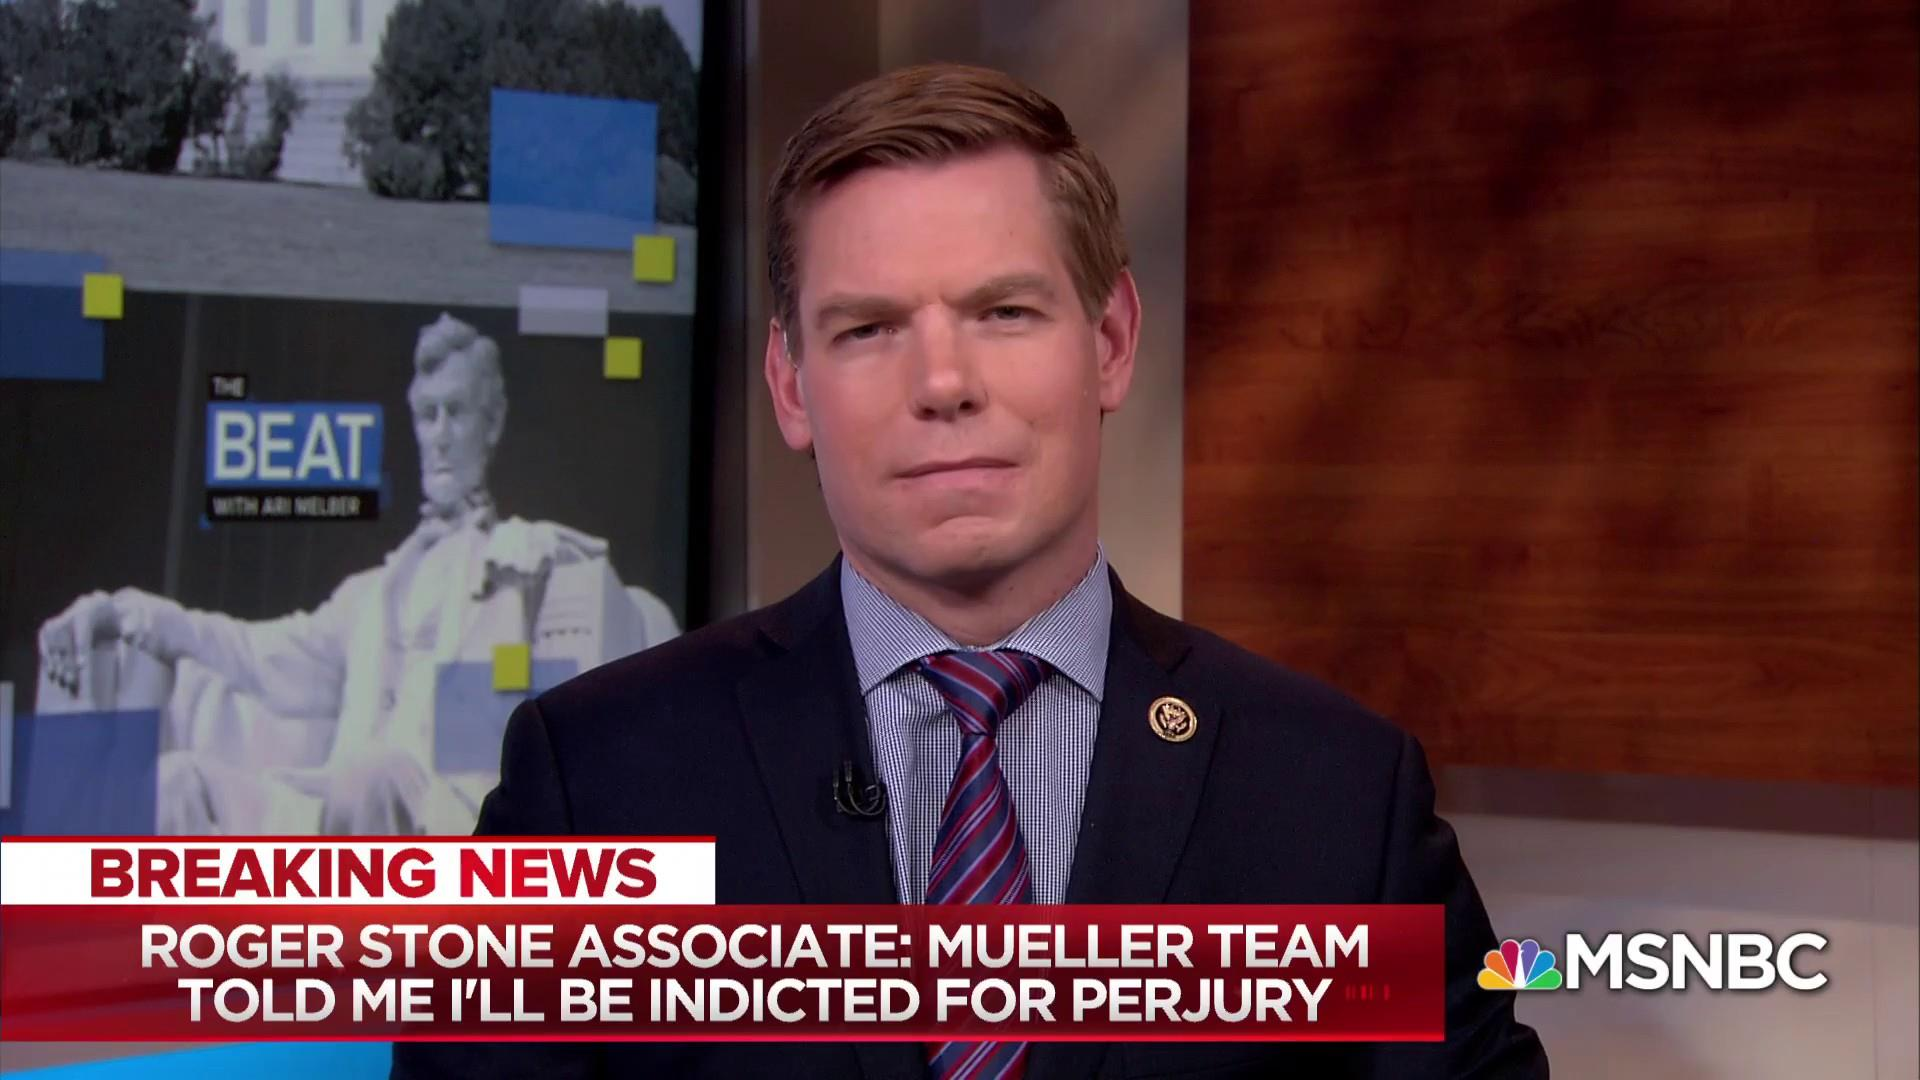 Rep. Swalwell: 'The days of Presidential immunity are over'